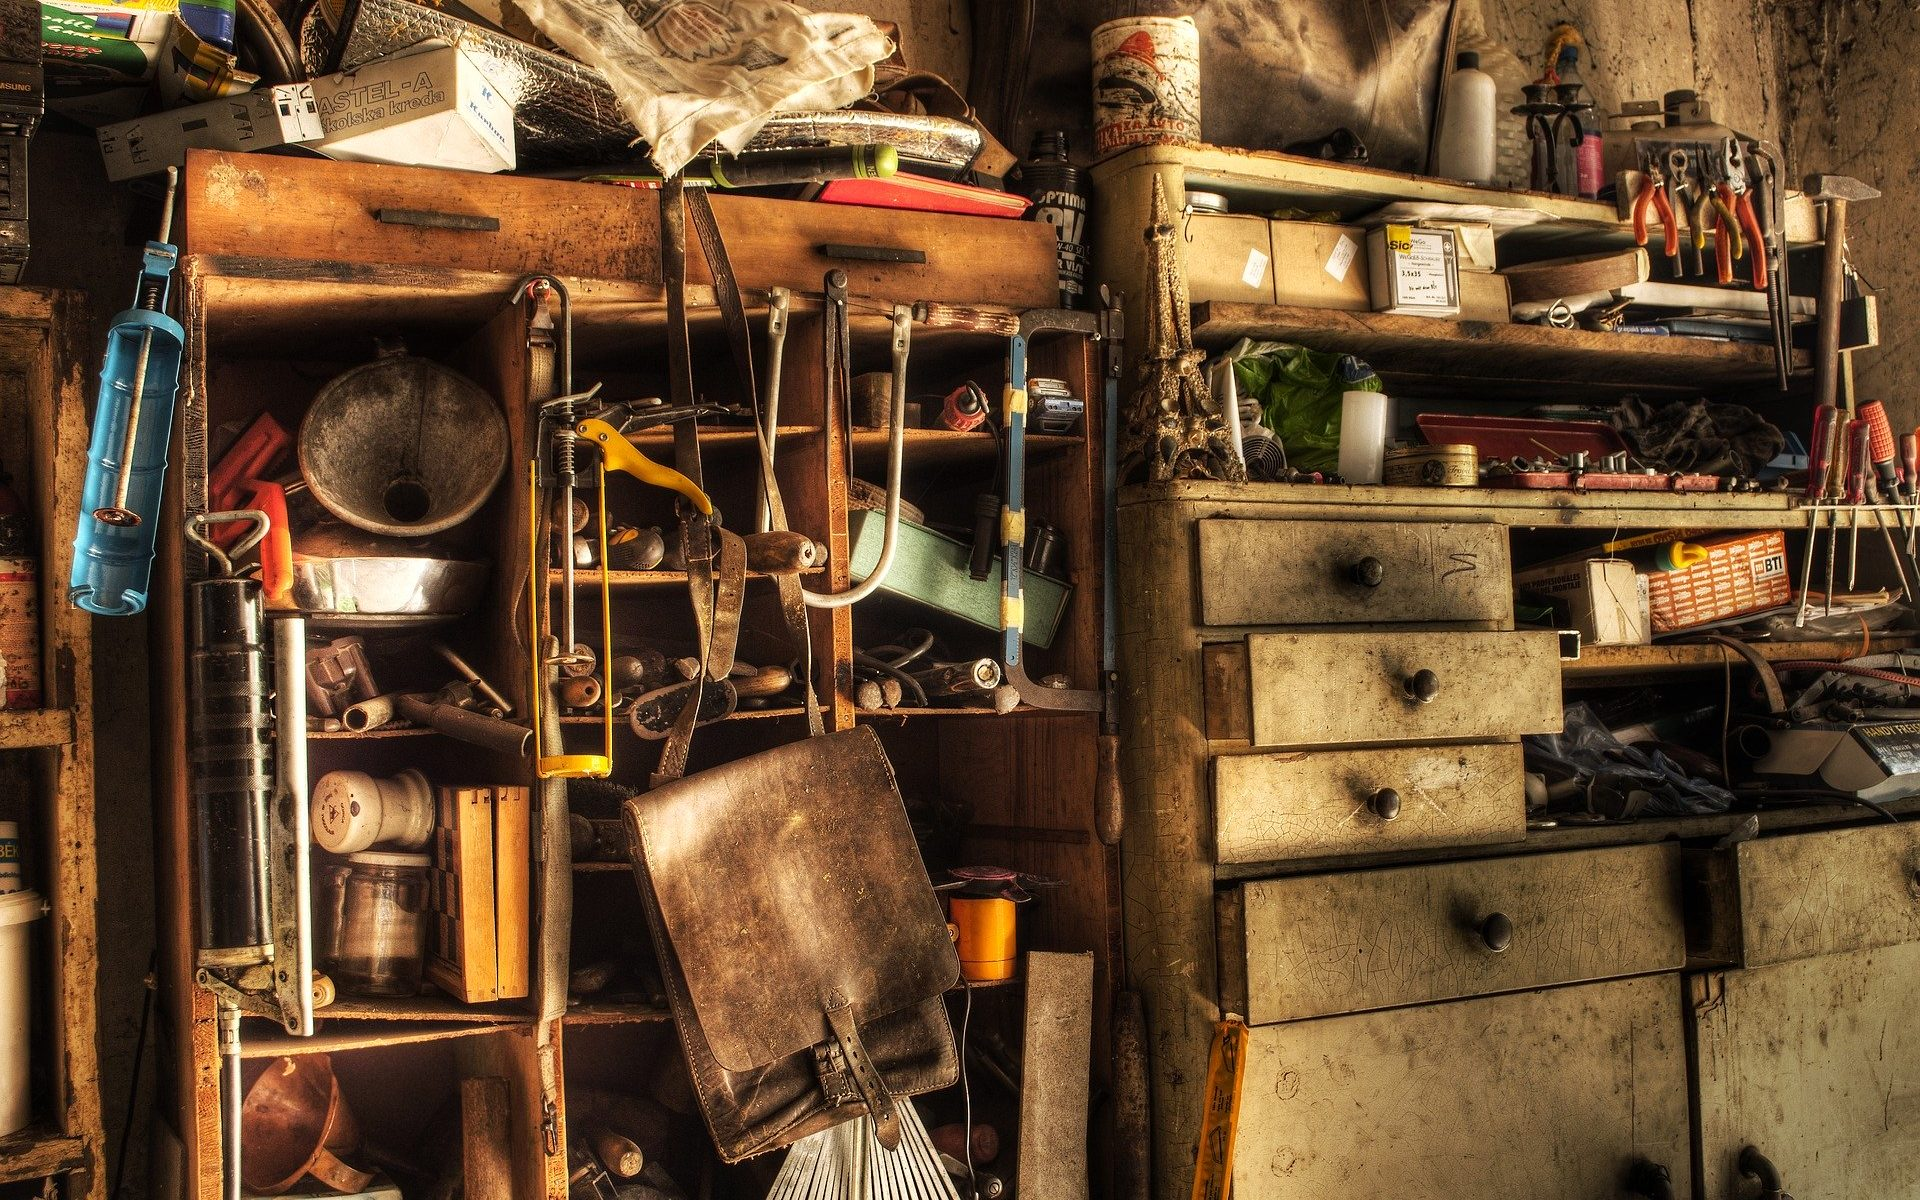 Hoarders | Cleanup For Compulsive Hoarders